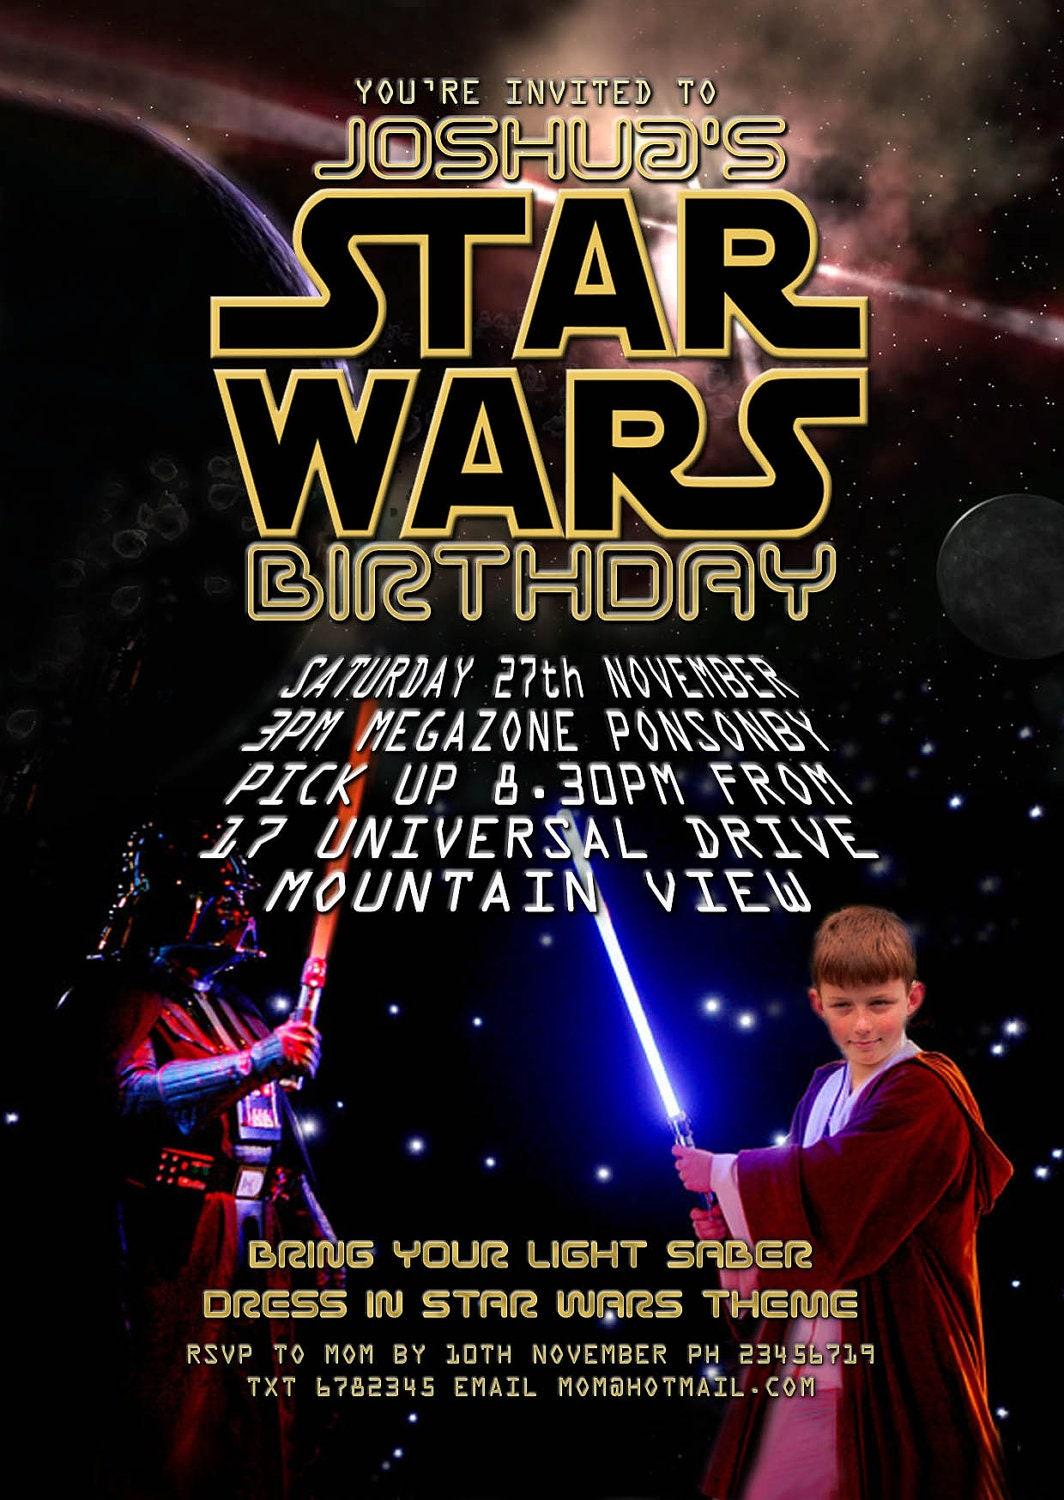 It's just a photo of Monster Printable Star Wars Birthday Invitations